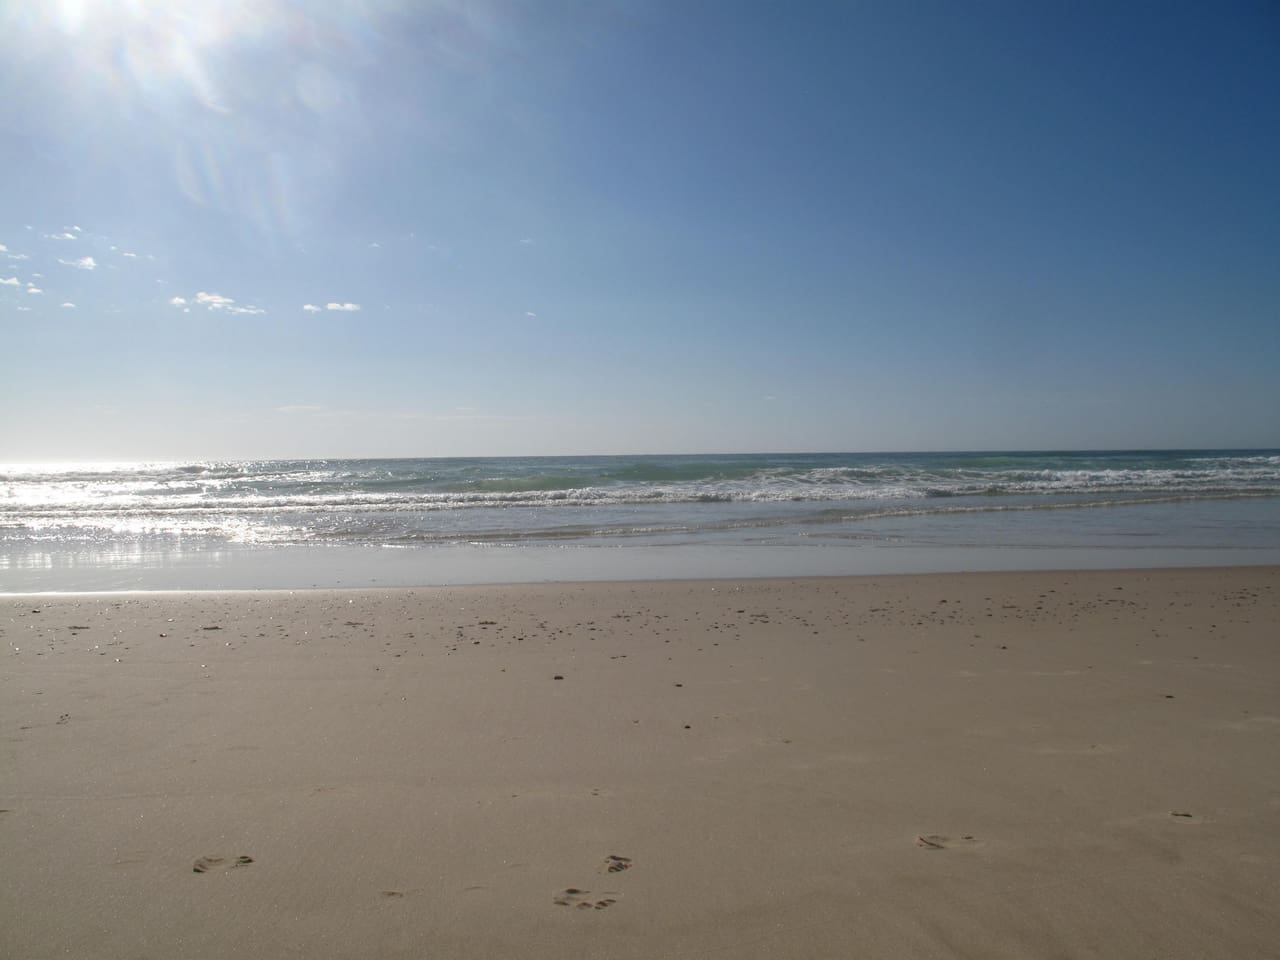 Stunning South Golden Beach is a 5 minute walk or a 3 min bike ride up the road.